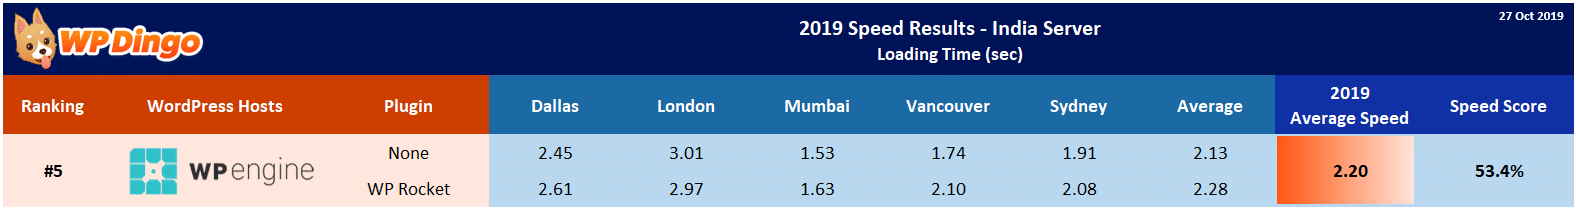 2019 WP Engine Speed Table - India Server